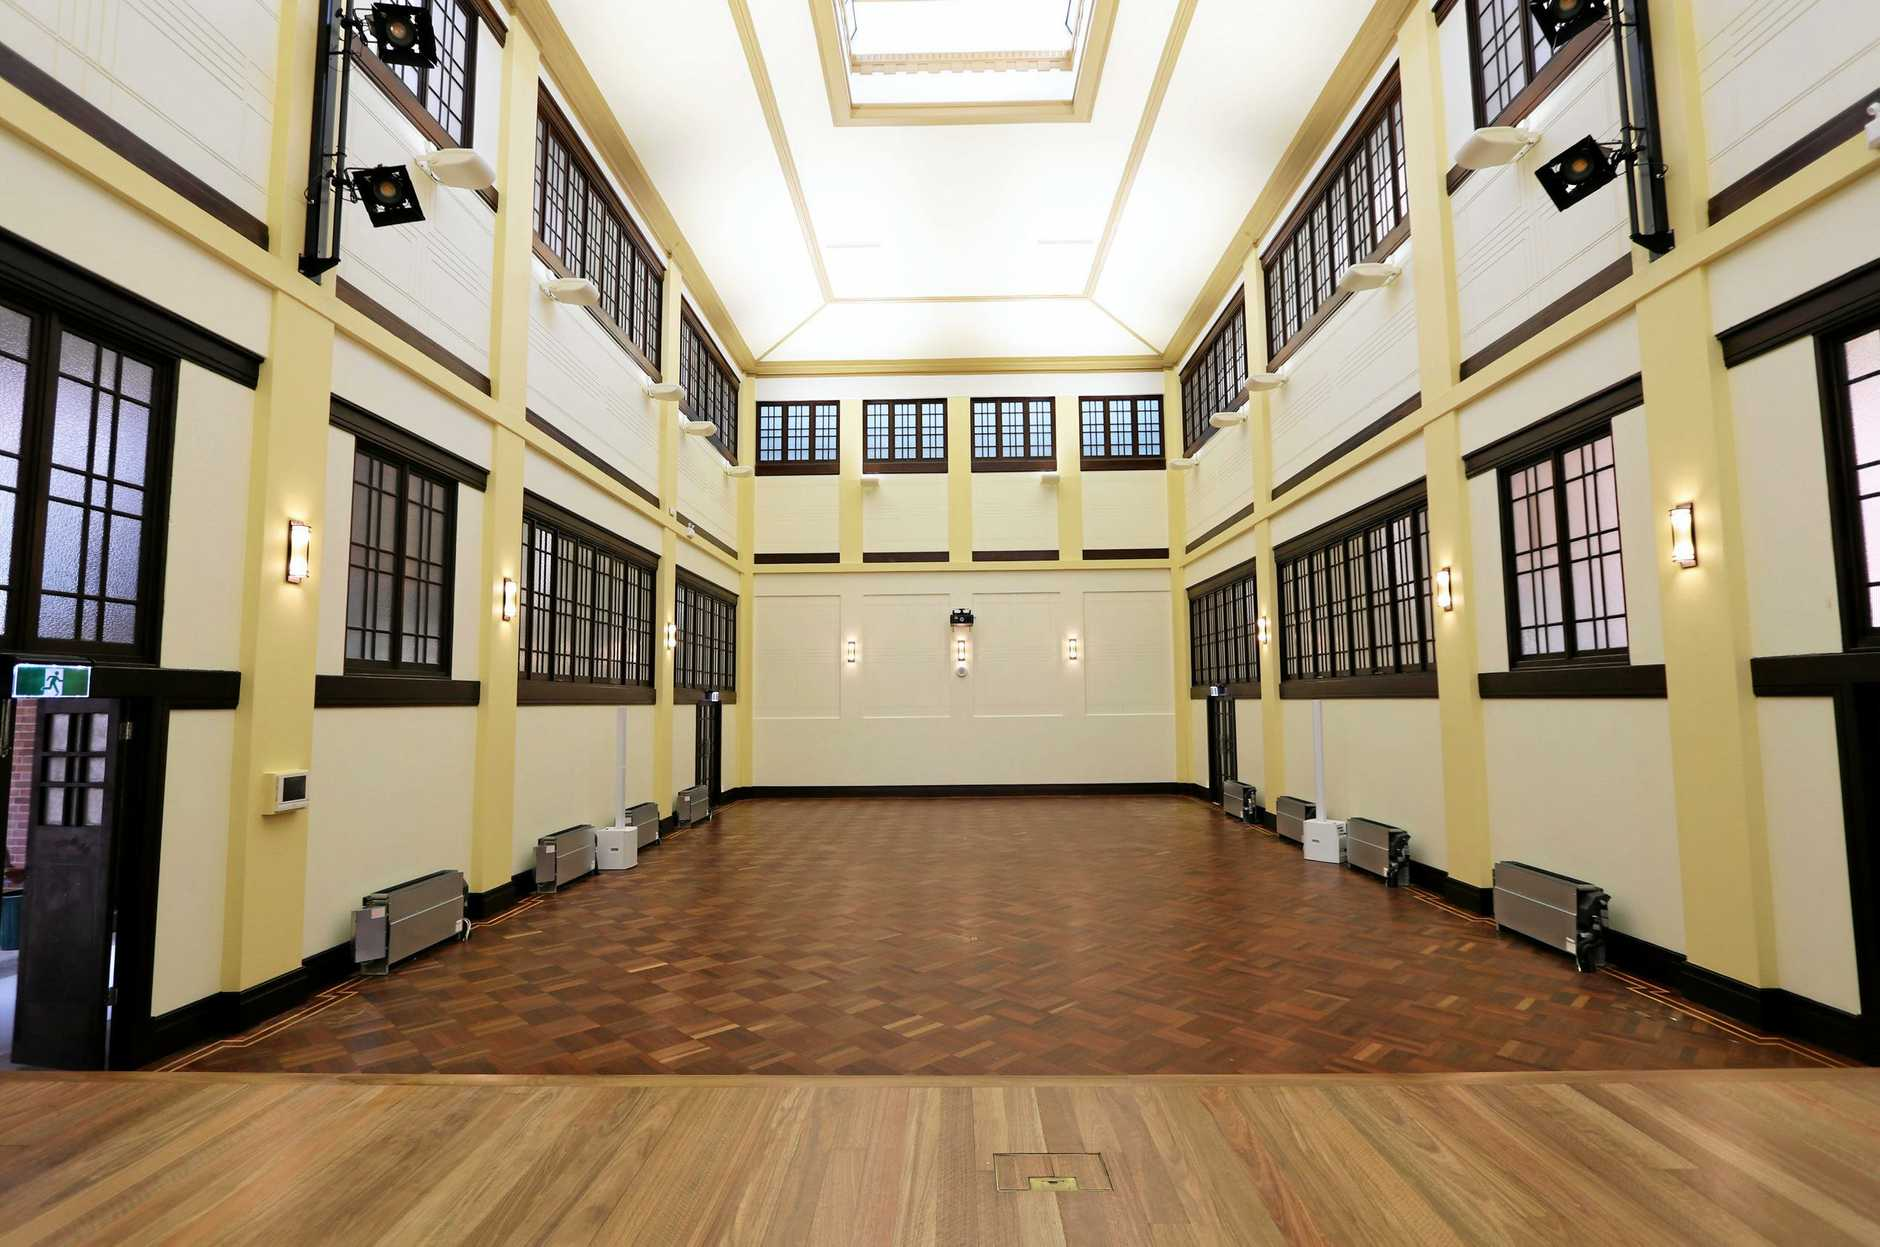 The restored City Hall reception room will be named in honour of former Rockhampton mayor Jim Webber.